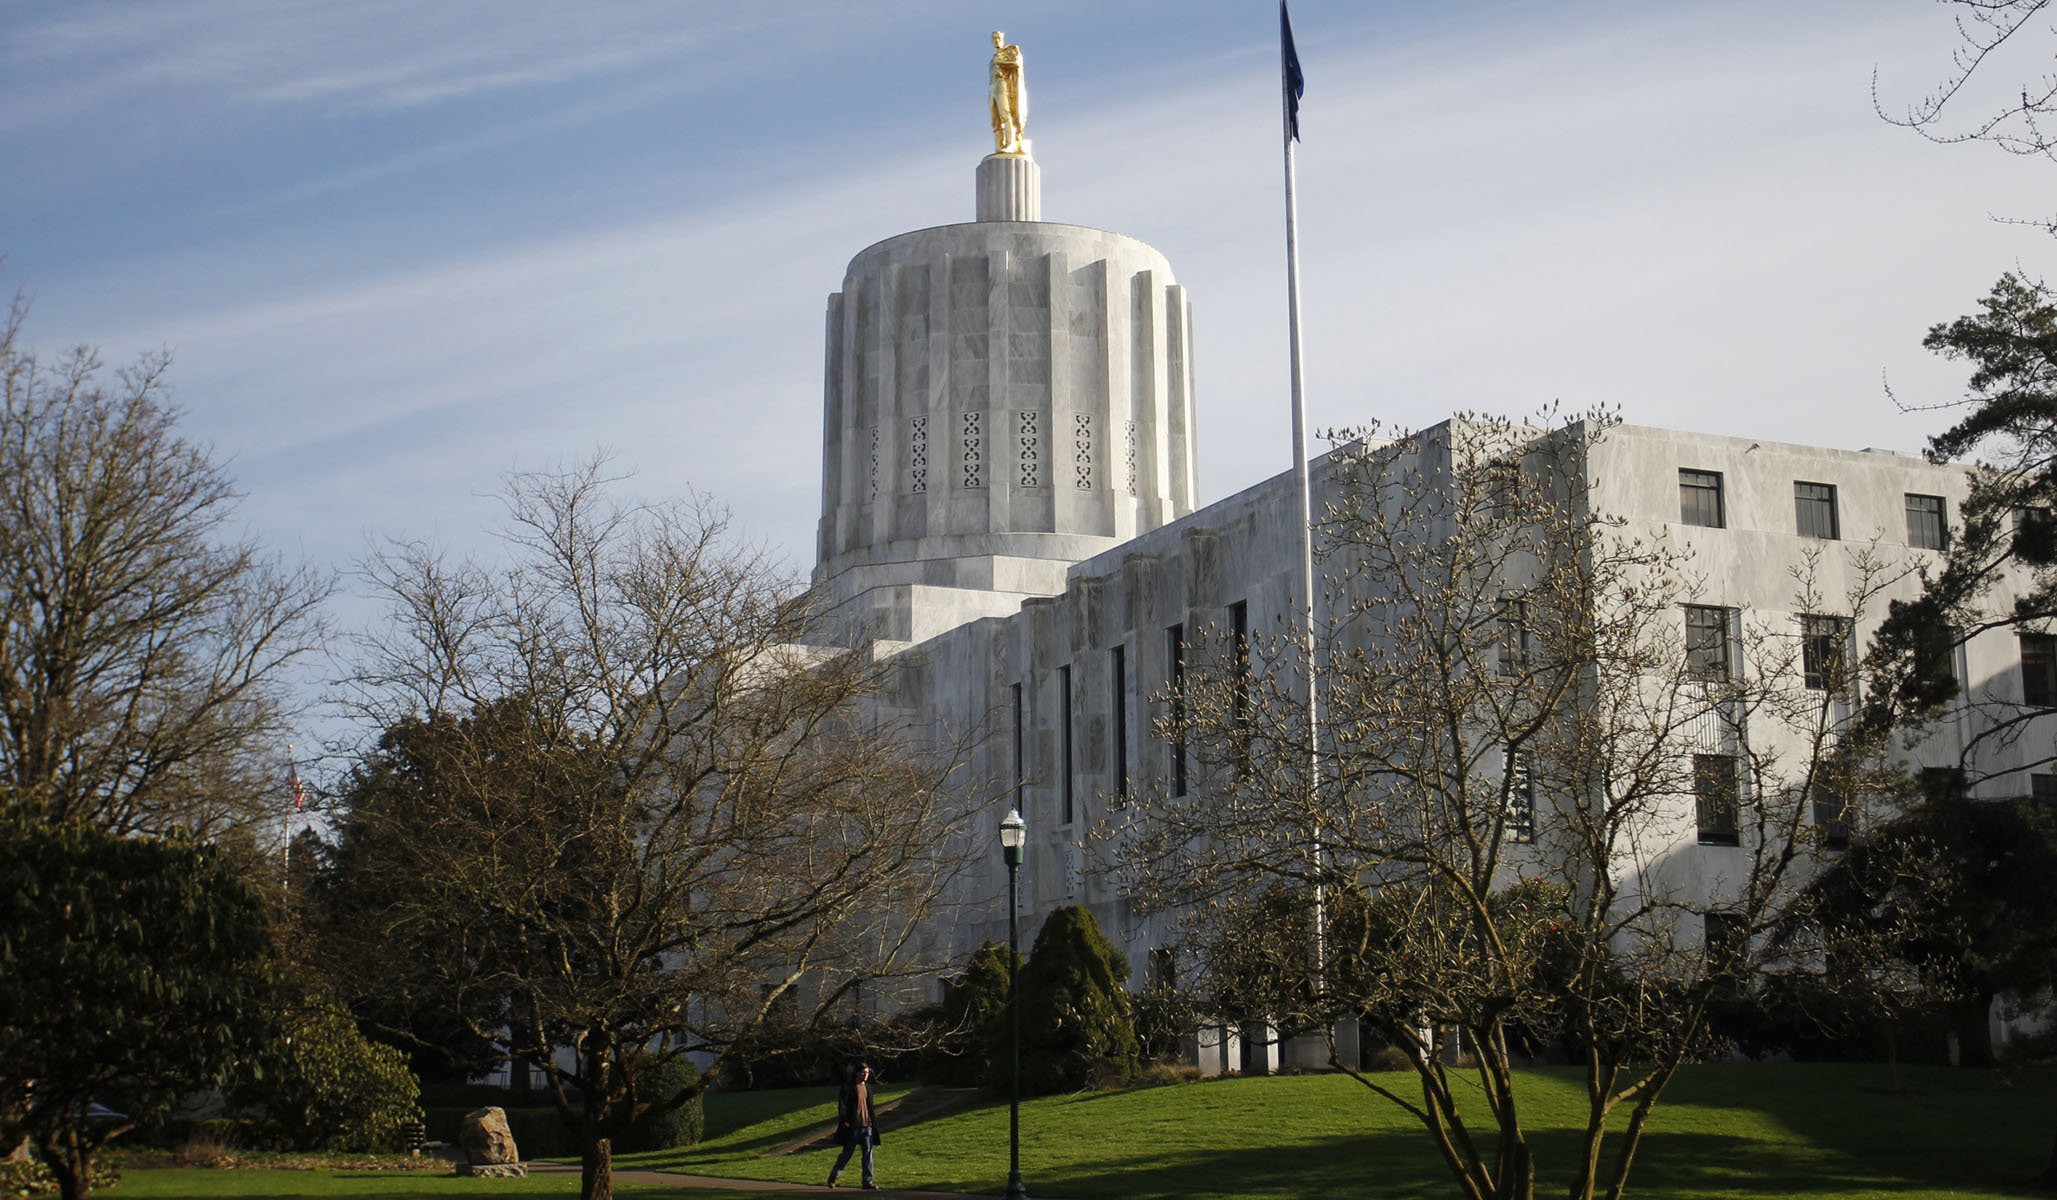 Oregon Supreme Court Bans ICE from Making Courthouse Arrests to 'Provide Access to Justice'